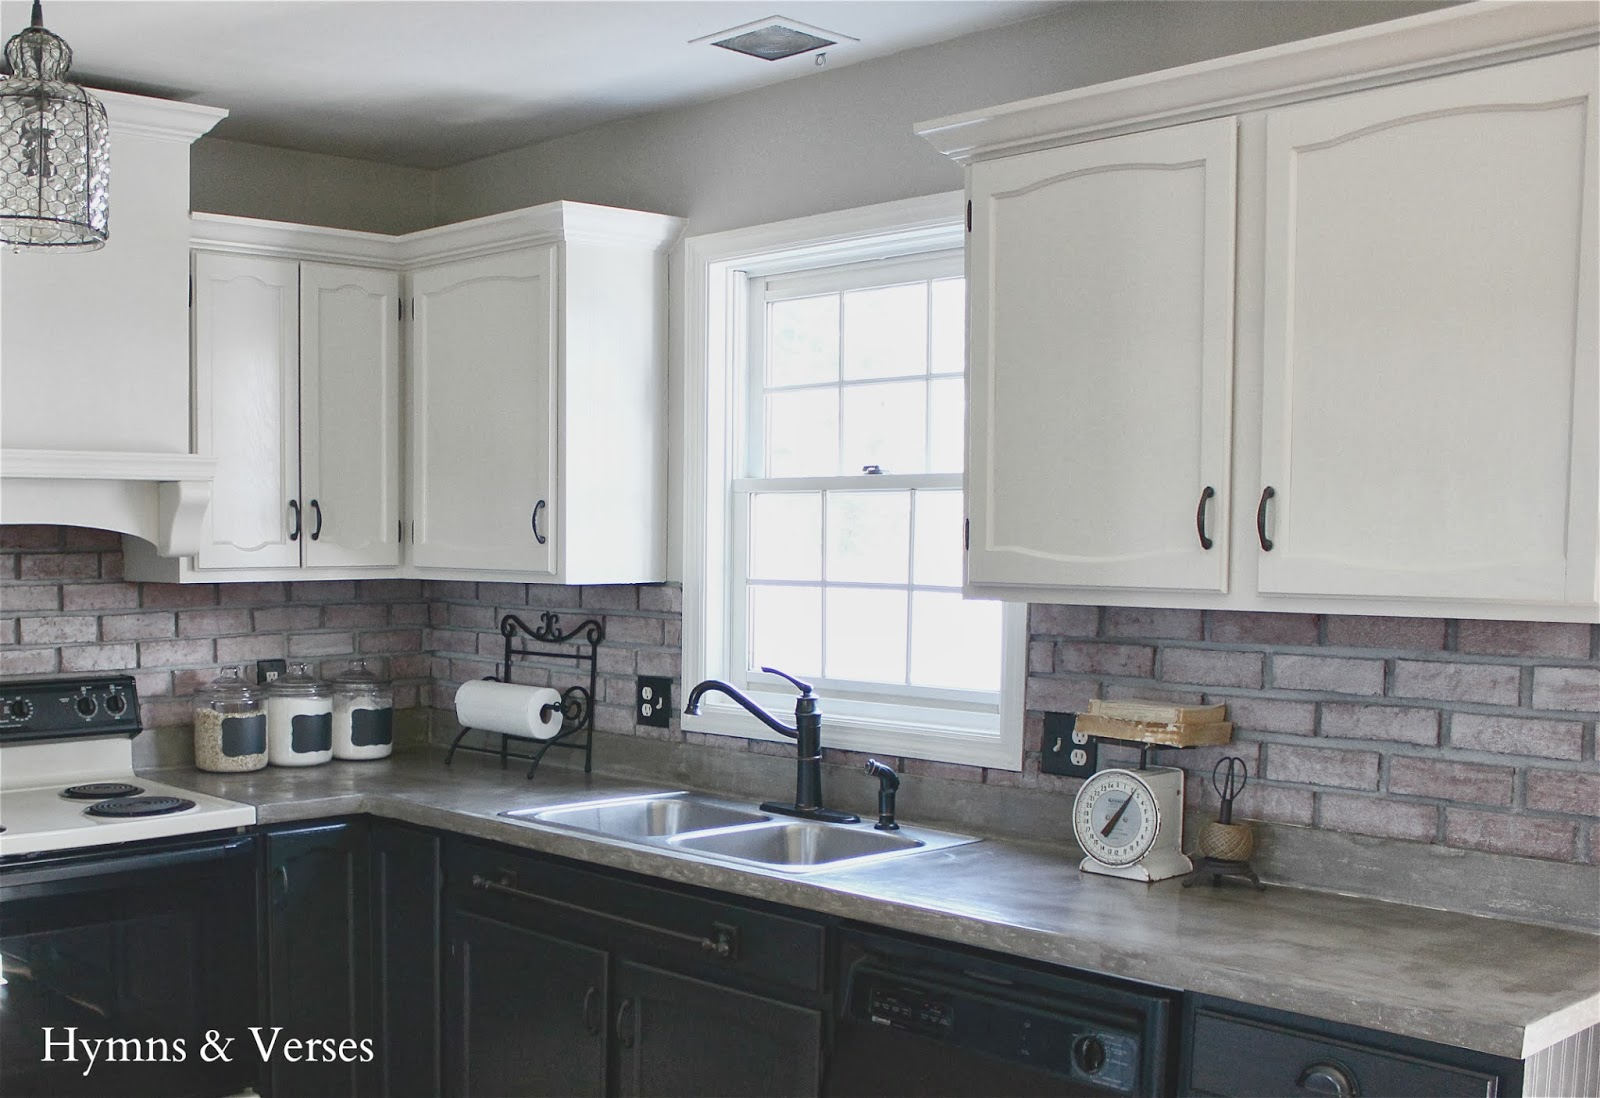 Our diy kitchen makeover hymns and verses for Black and white painted kitchen cabinets